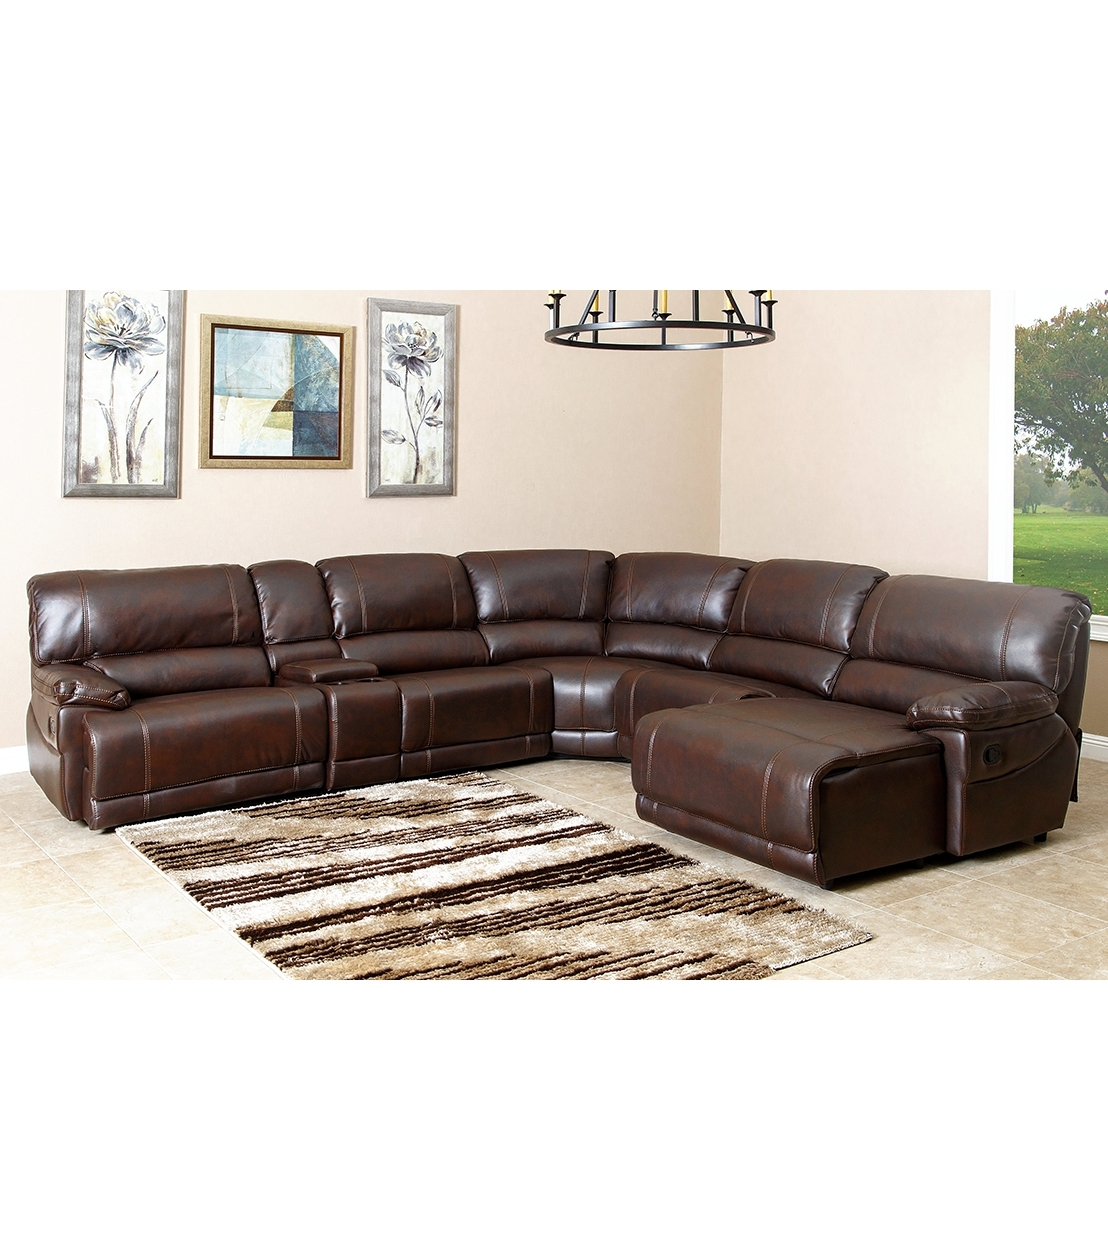 Latest Abbyson Sectional Sofas Pertaining To Sectionals : Cooper Leather Sectional (View 11 of 15)